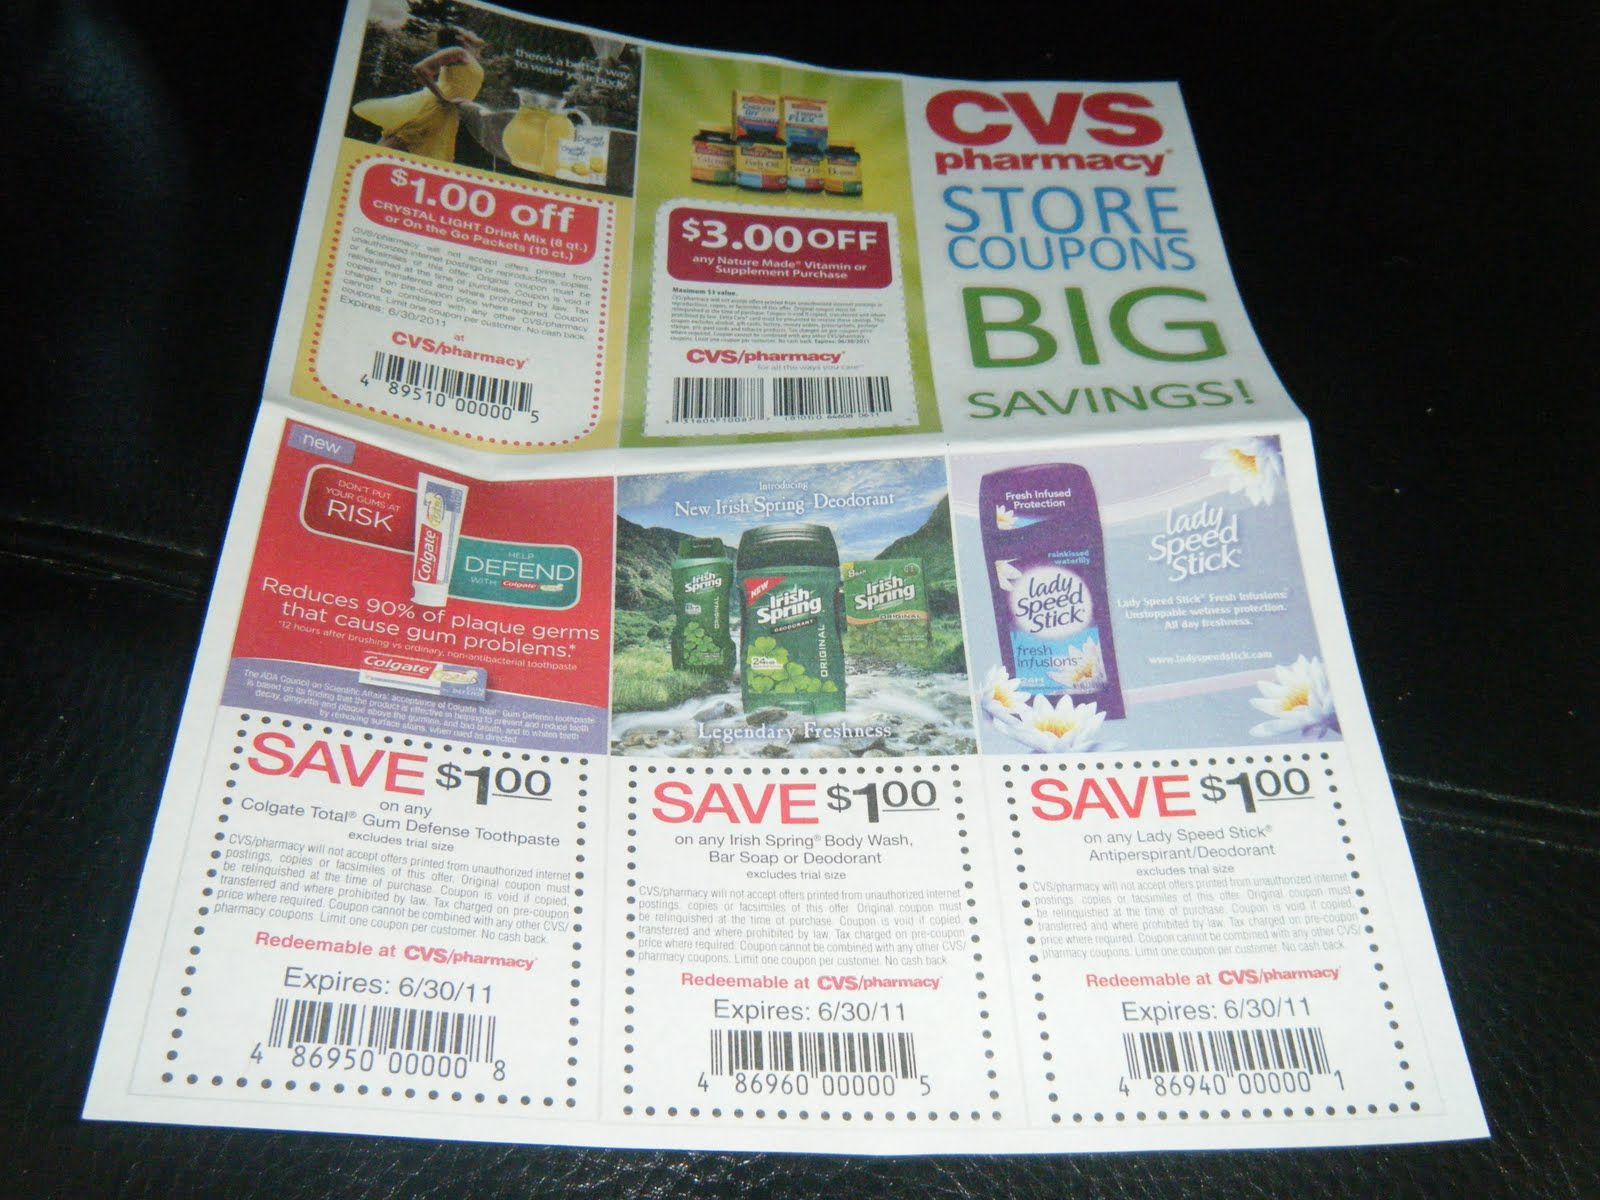 Spiffy coupons